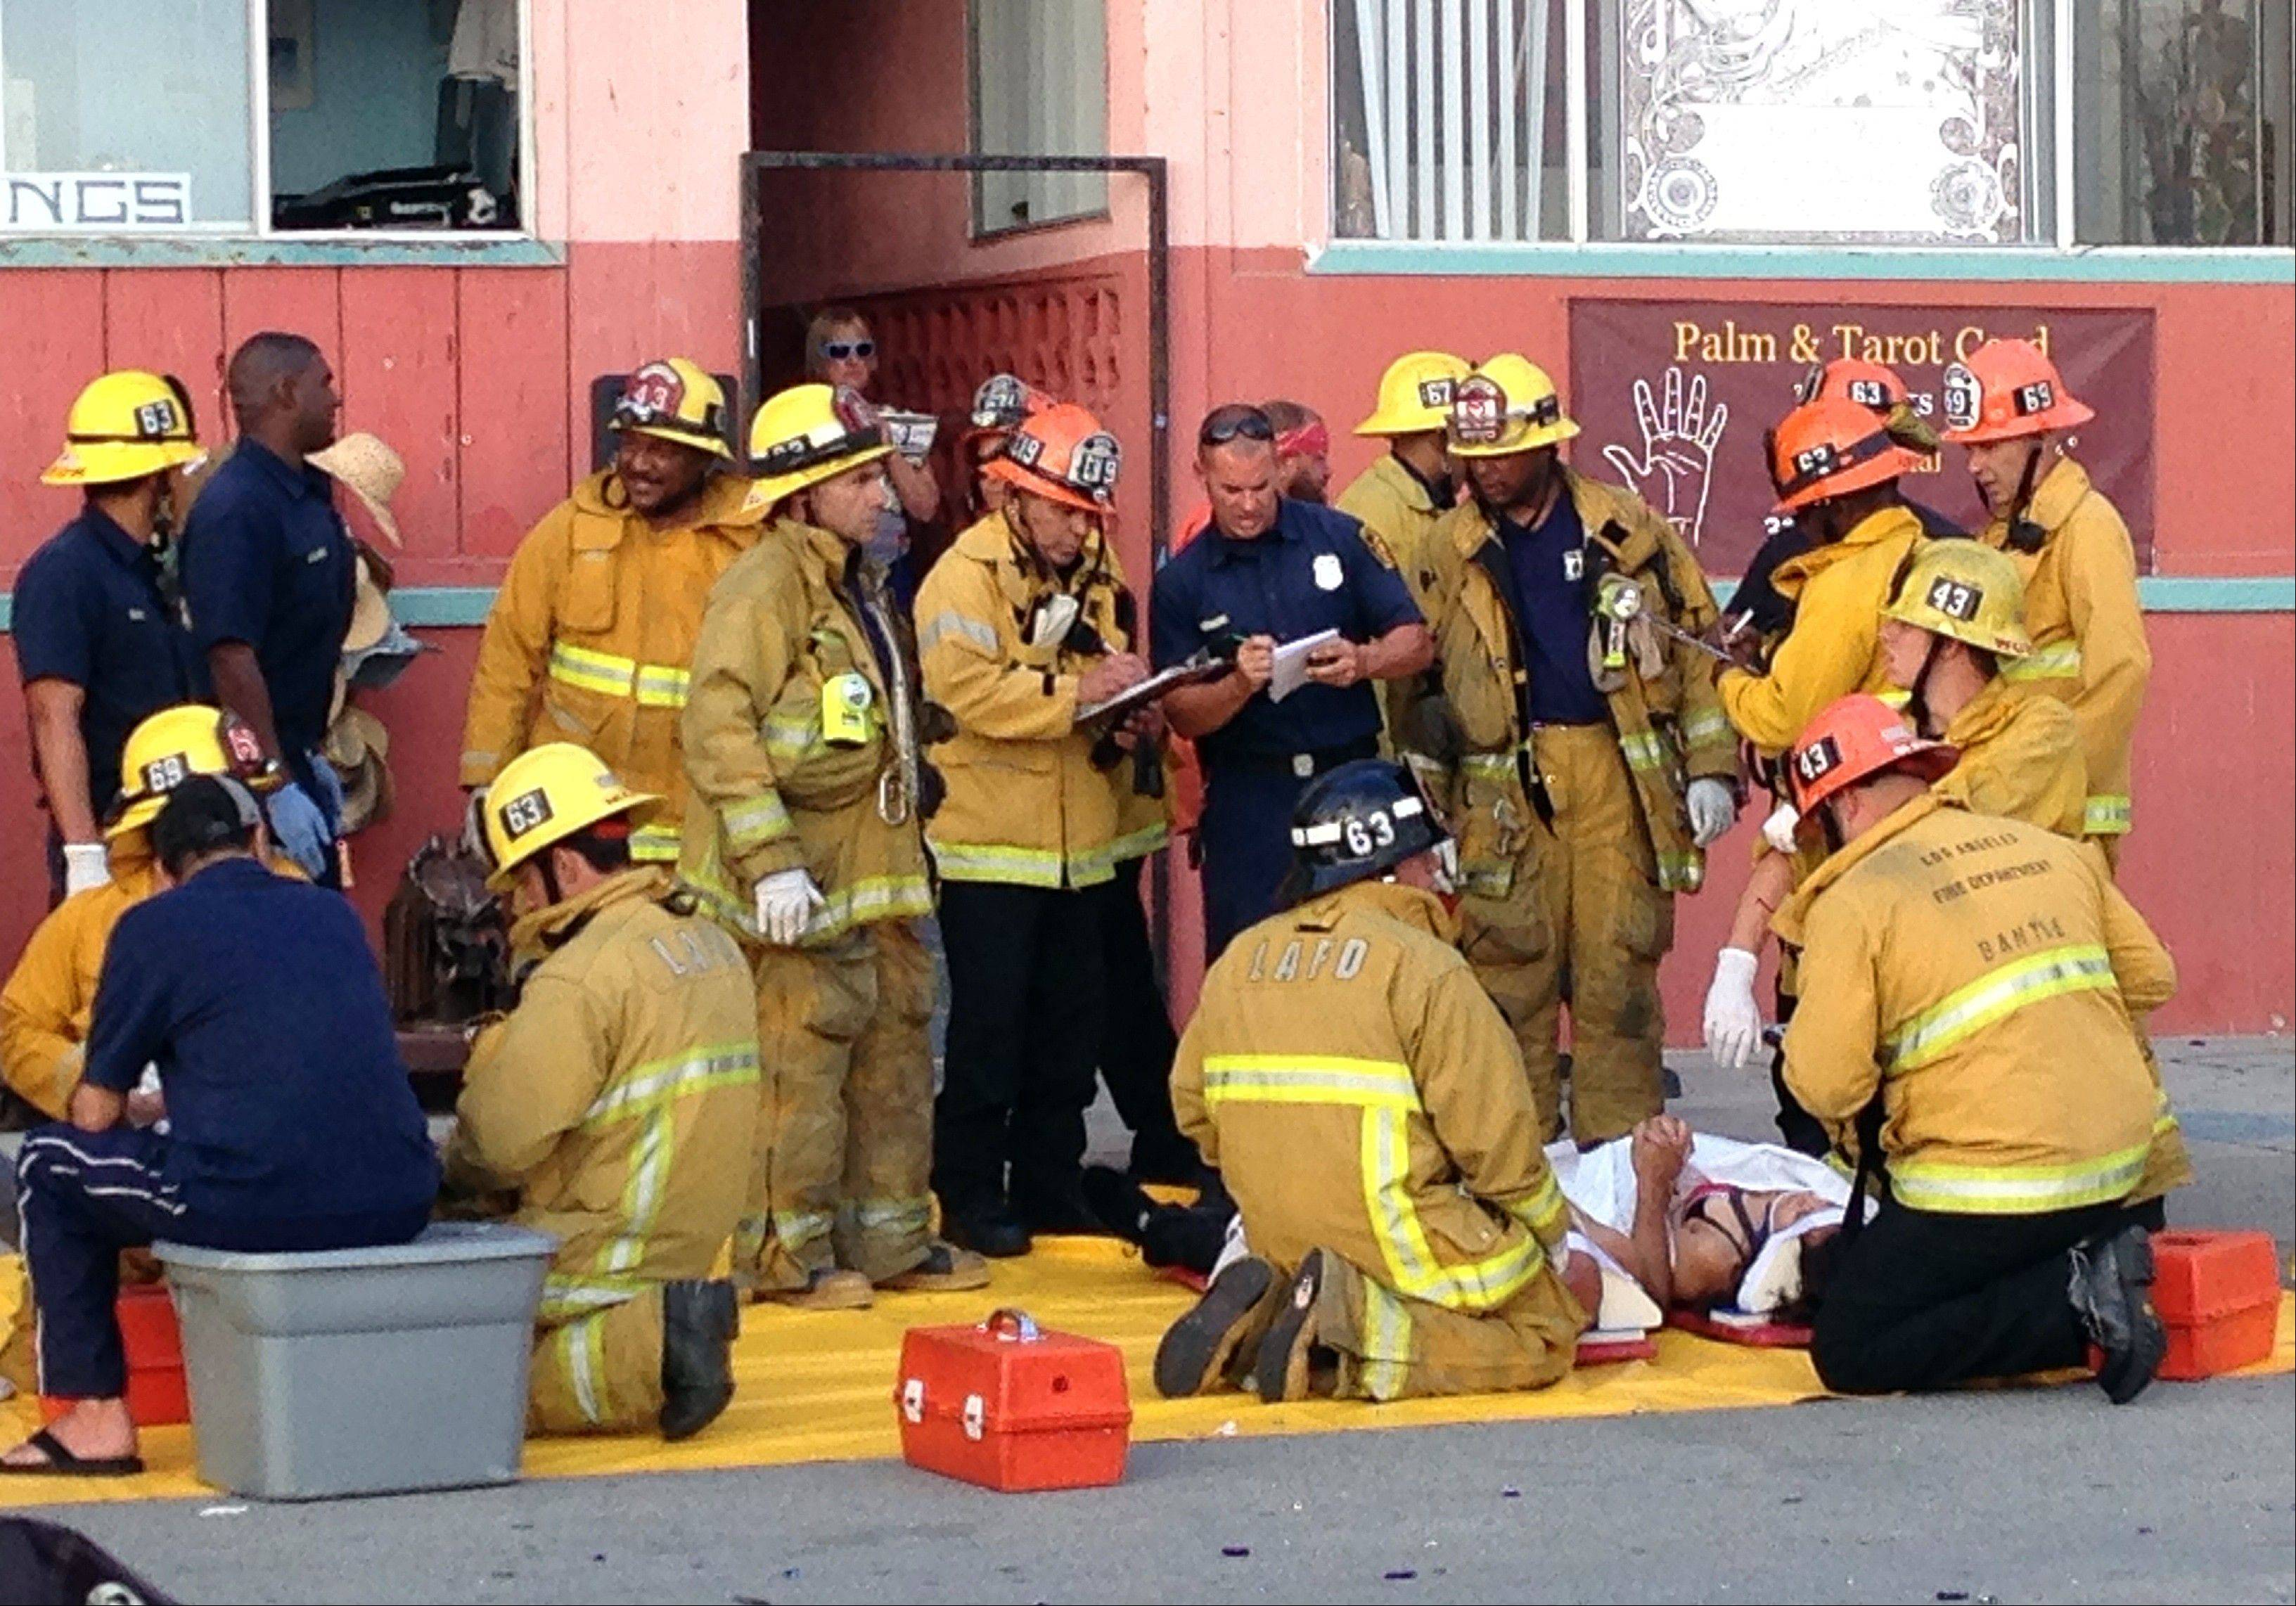 Police and firefighters assist an injured pedestrian at the scene where a car drove through a packed afternoon crowd along the Venice Beach boardwalk Saturday in Los Angeles. One woman was killed.